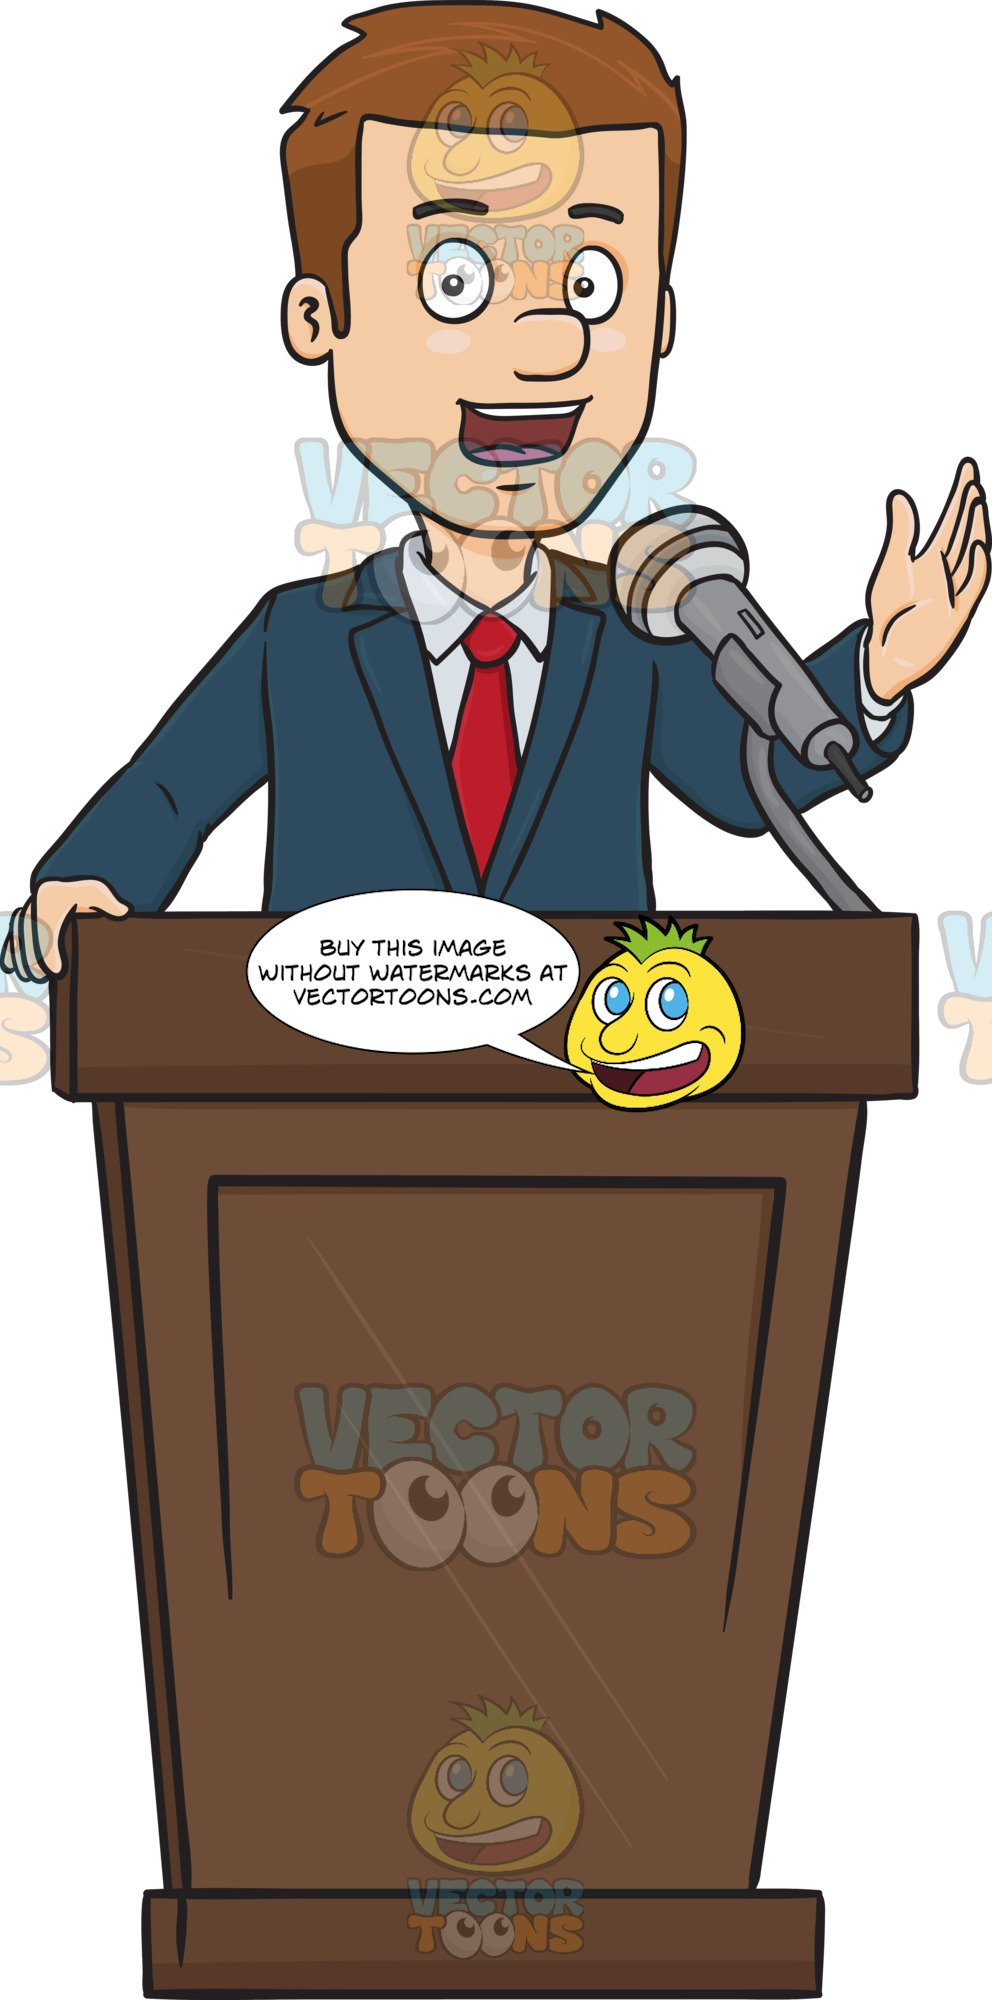 Man in suit standing clipart banner freeuse A Man In A Suit Standing Behind A Podium Giving A Speech banner freeuse